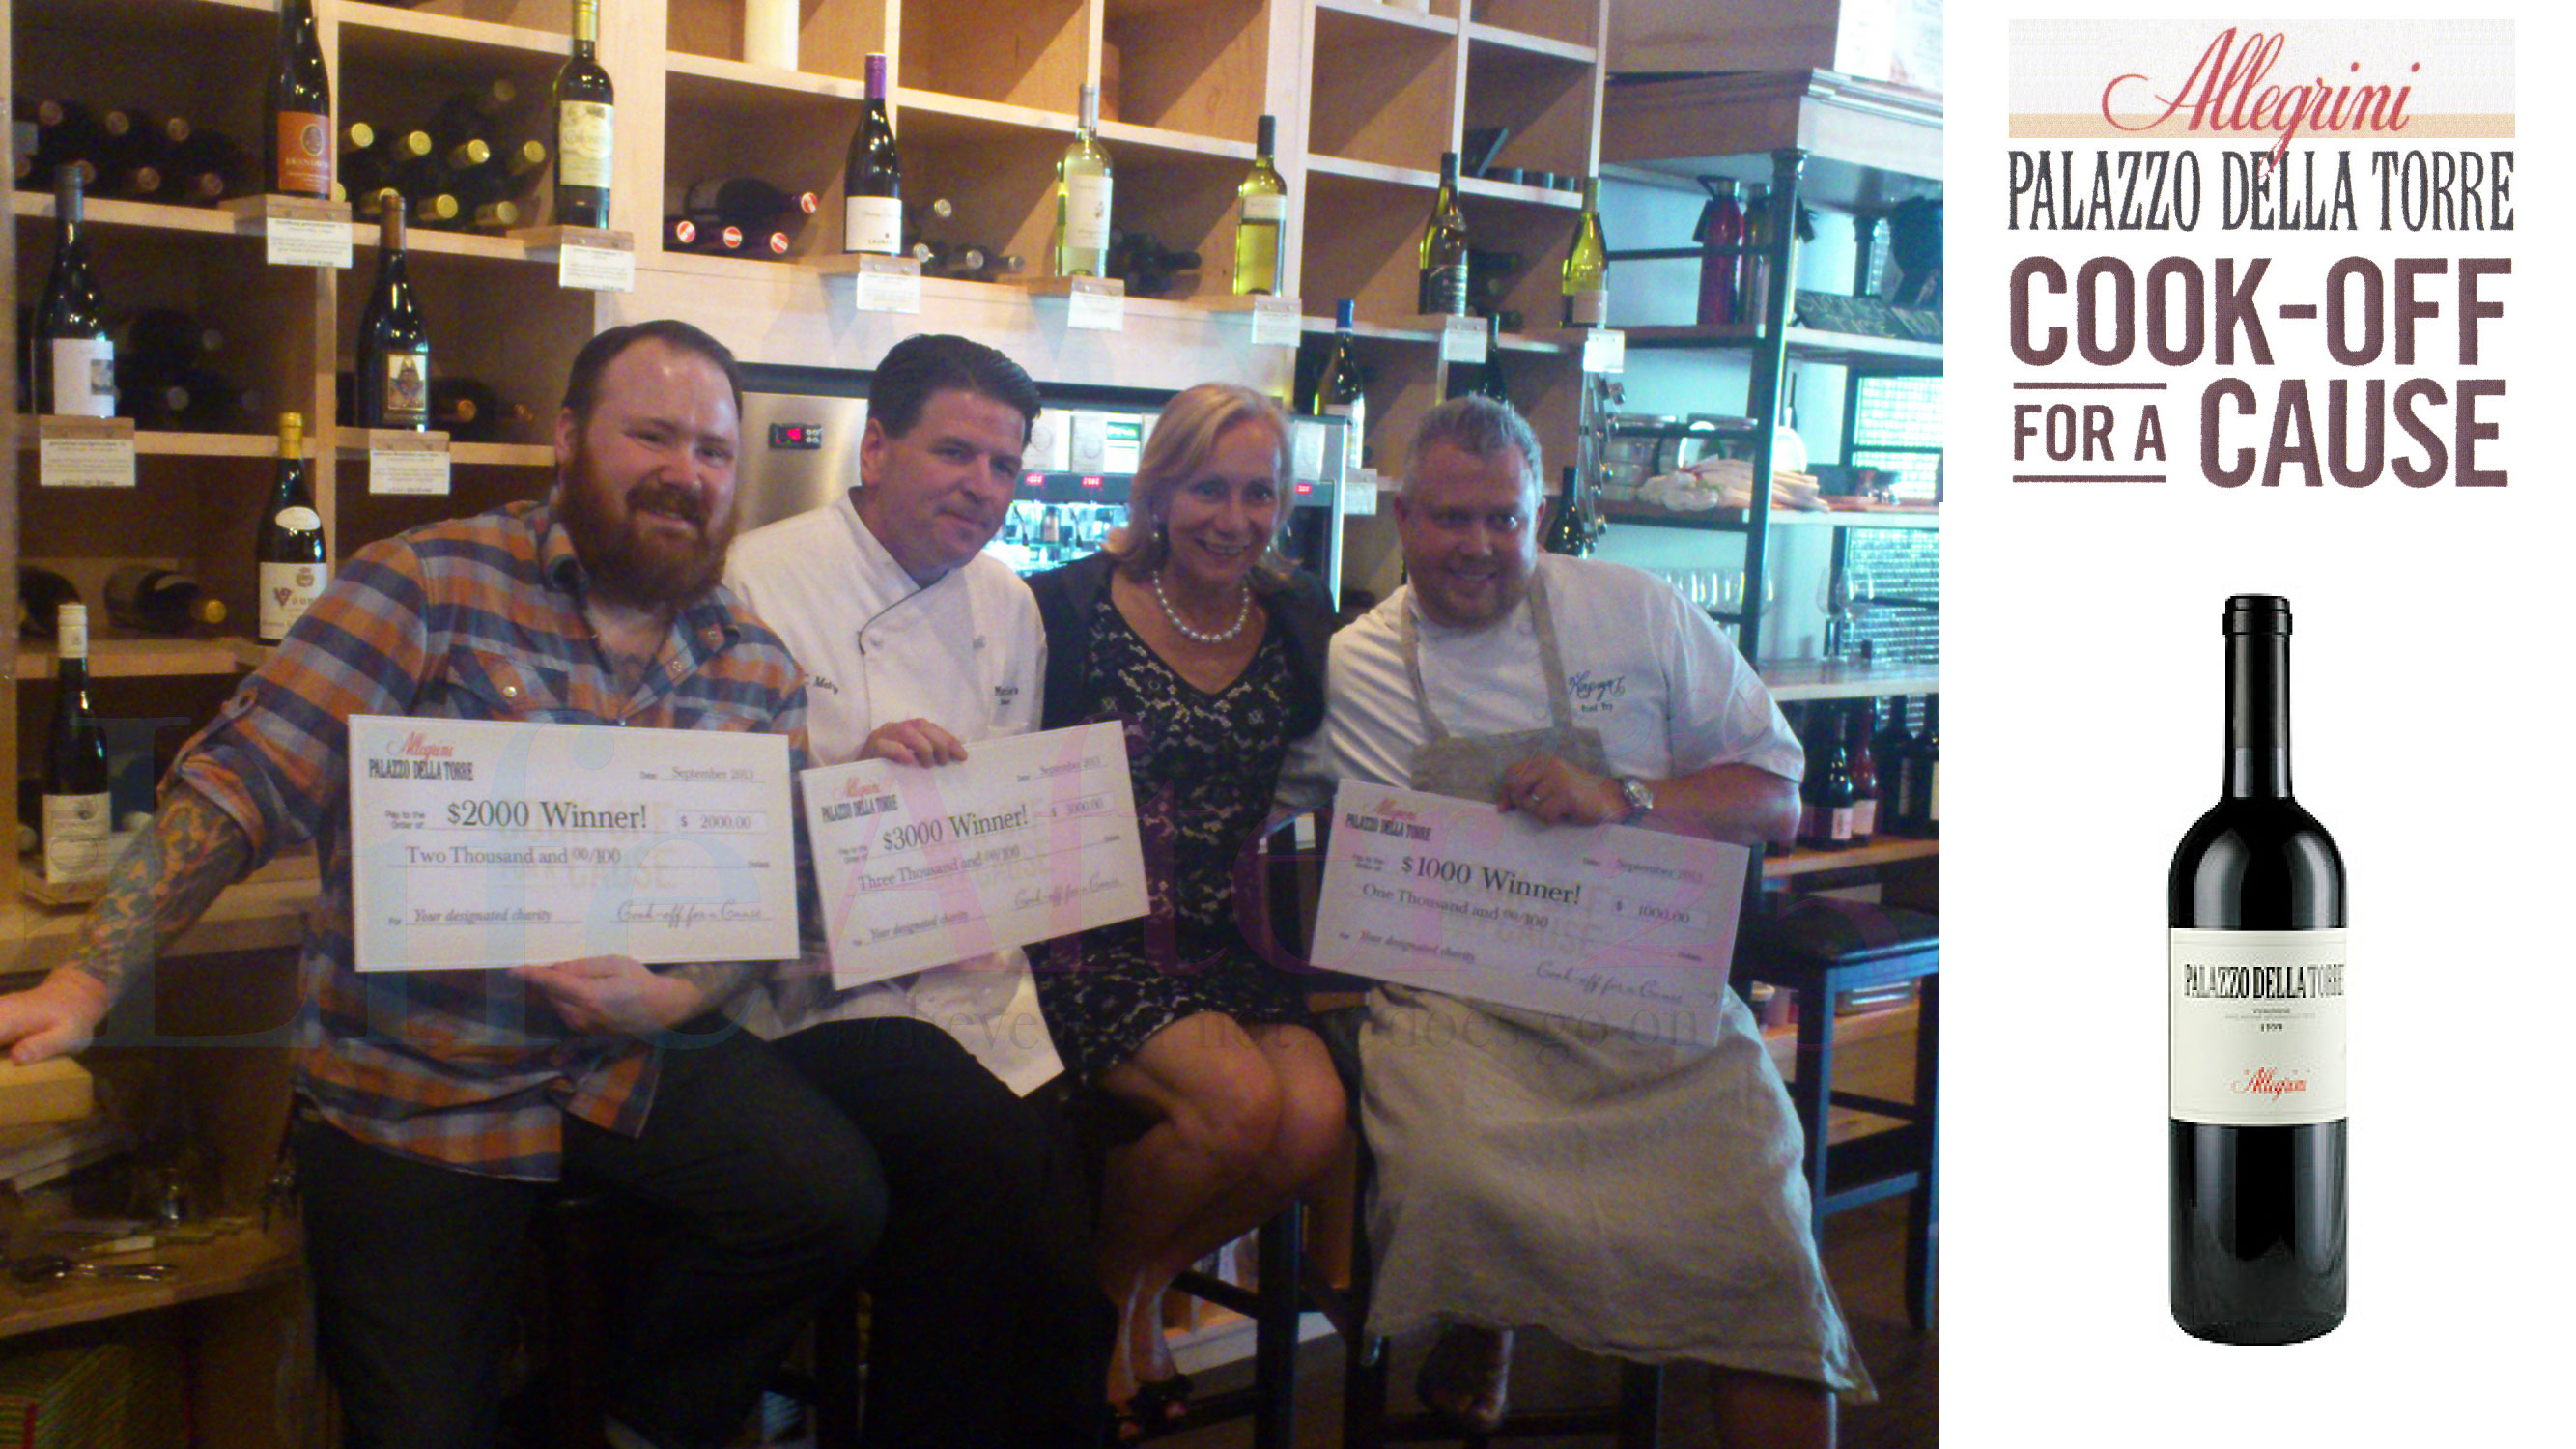 Marilisa-Allegrini-and-the-Chefs-of-Cook-Off-For-A-Cause Palazzo Della Torre Wine Cooking for Charity